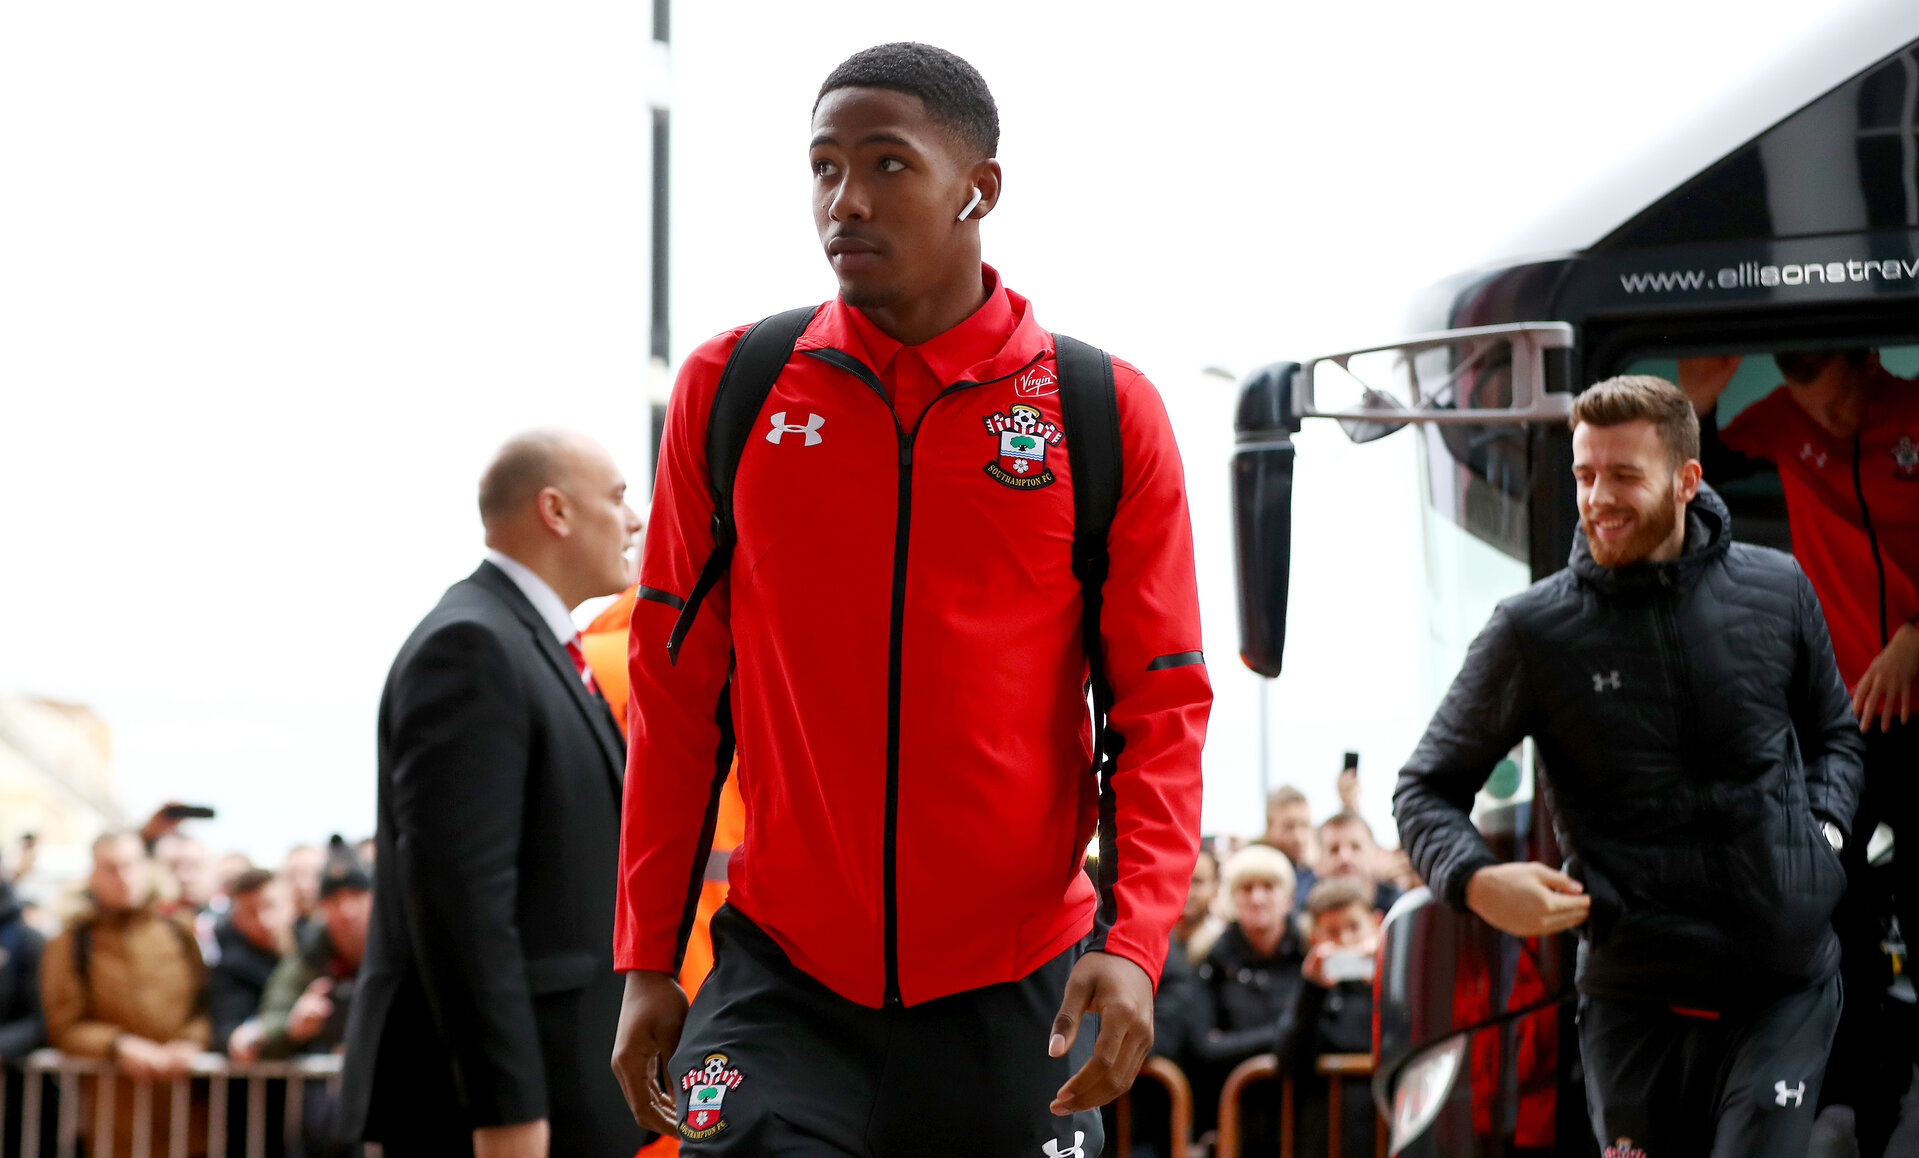 SOUTHAMPTON, ENGLAND - DECEMBER 30: Kayne Ramsay of Southampton ahead of the Premier League match between Southampton FC and Manchester City at St Mary's Stadium on December 30, 2018 in Southampton, United Kingdom. (Photo by Matt Watson/Southampton FC via Getty Images)